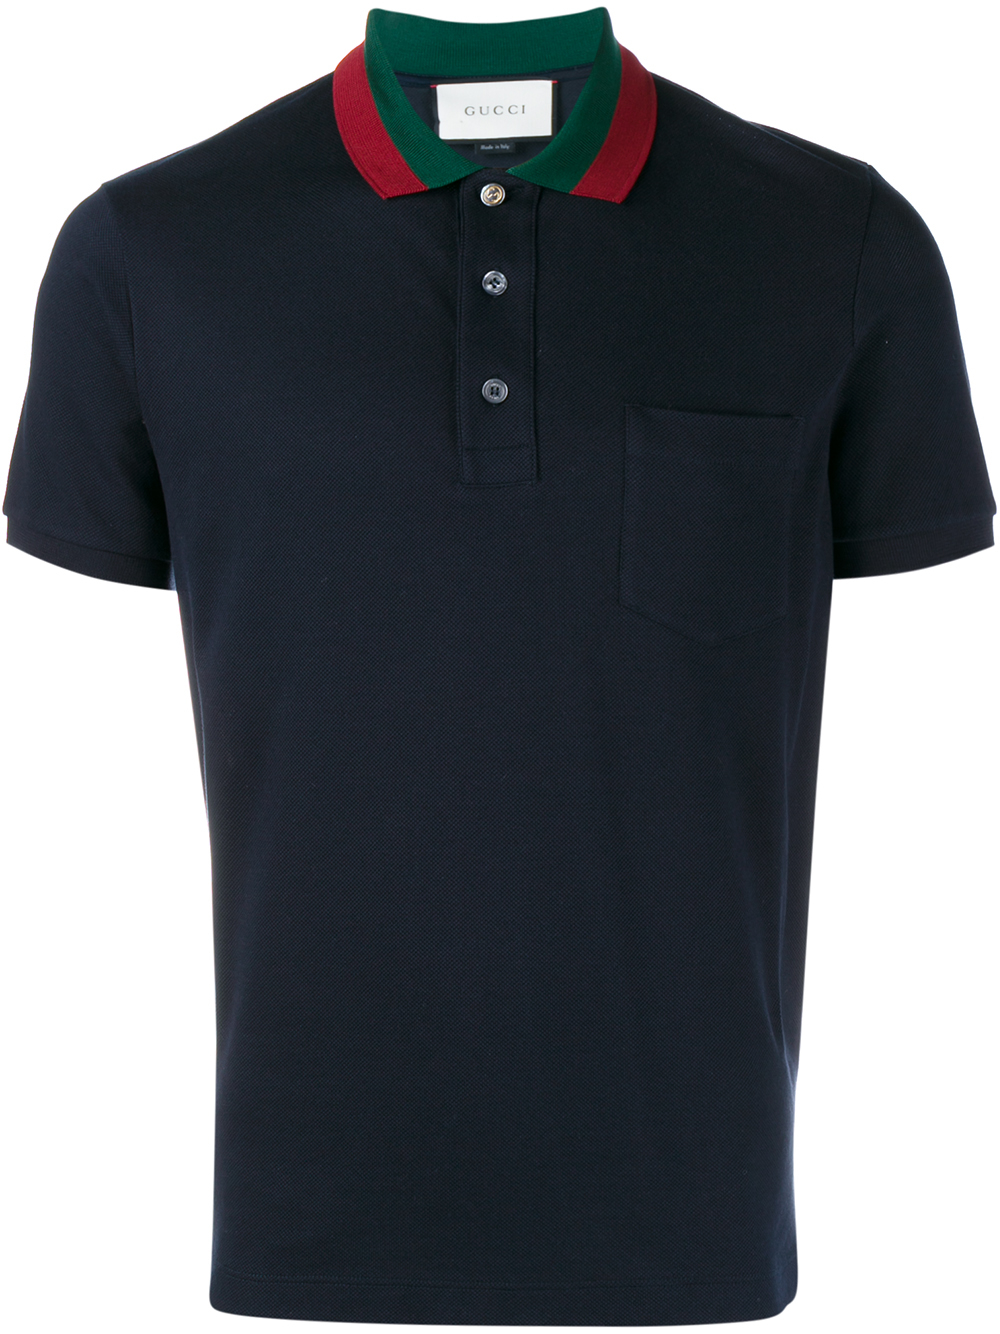 1ef8e2400c8 Lyst - Gucci Striped Collar Polo T-shirt in Blue for Men